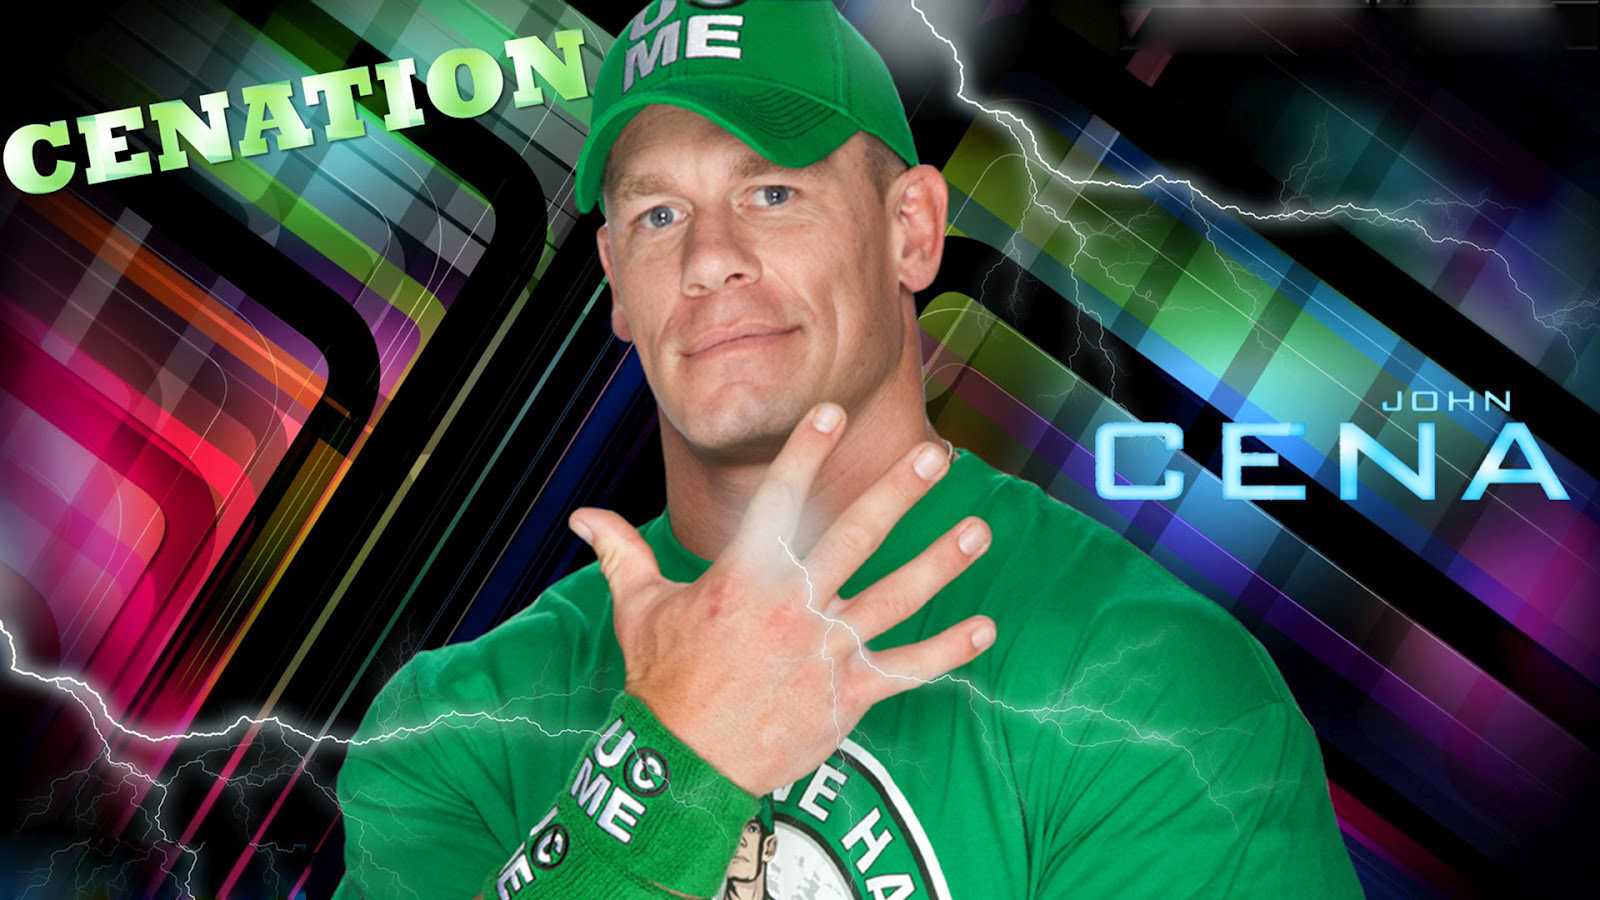 ALL SPORTS PLAYERS Wwe John Cena New HD Wallpapers 2013 1600x900